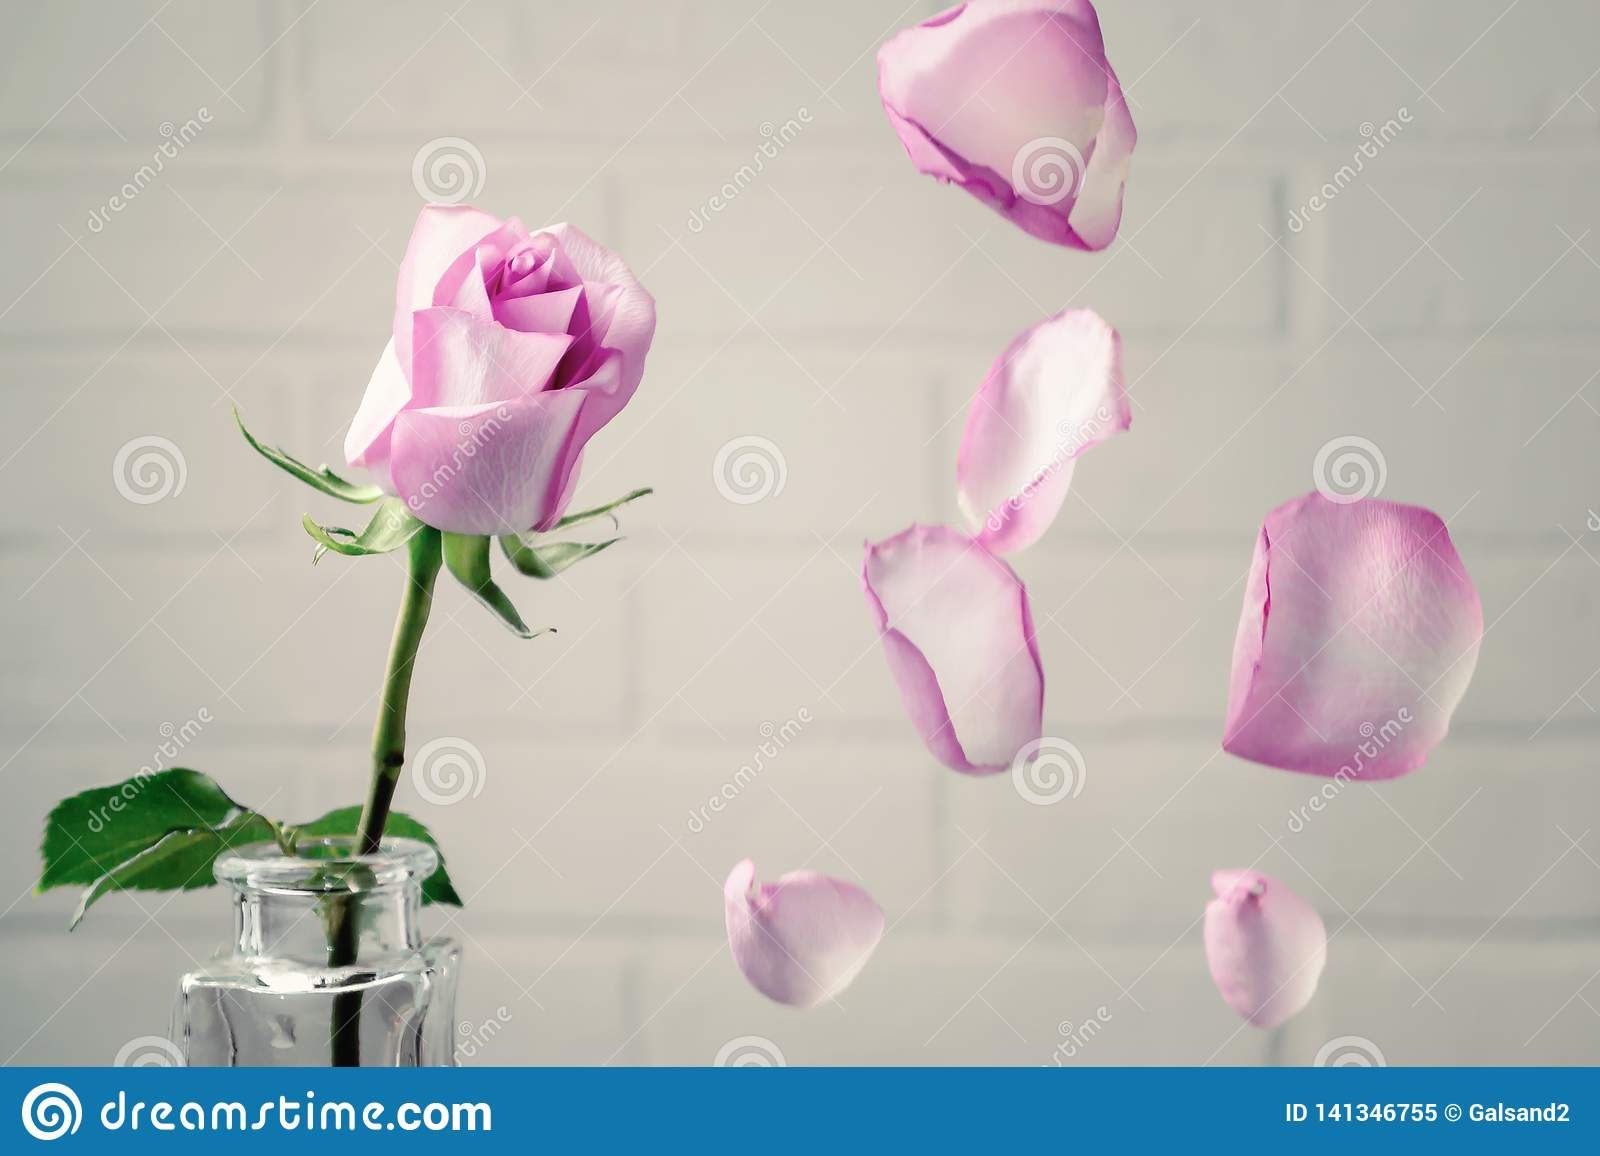 Pink rose in a vase with falling petals against the background of a white wall. Tenderness, fragility, loneliness, romance concept